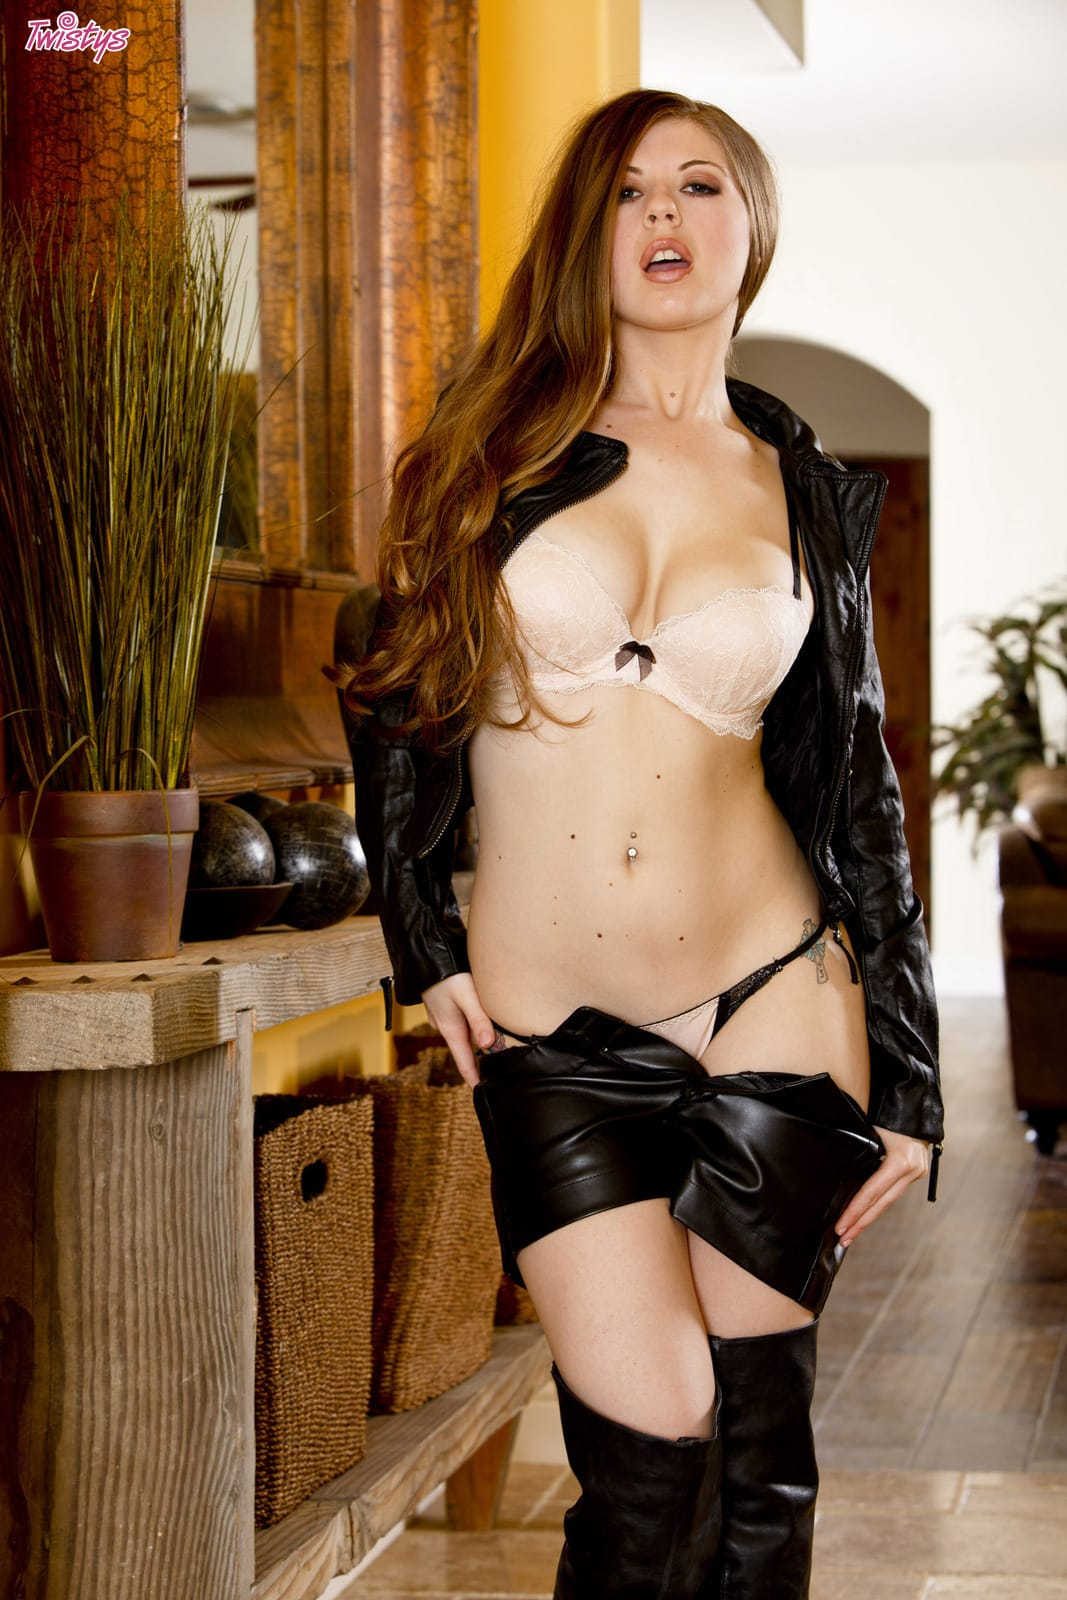 Jessi June stripping leather outfit and lingerie